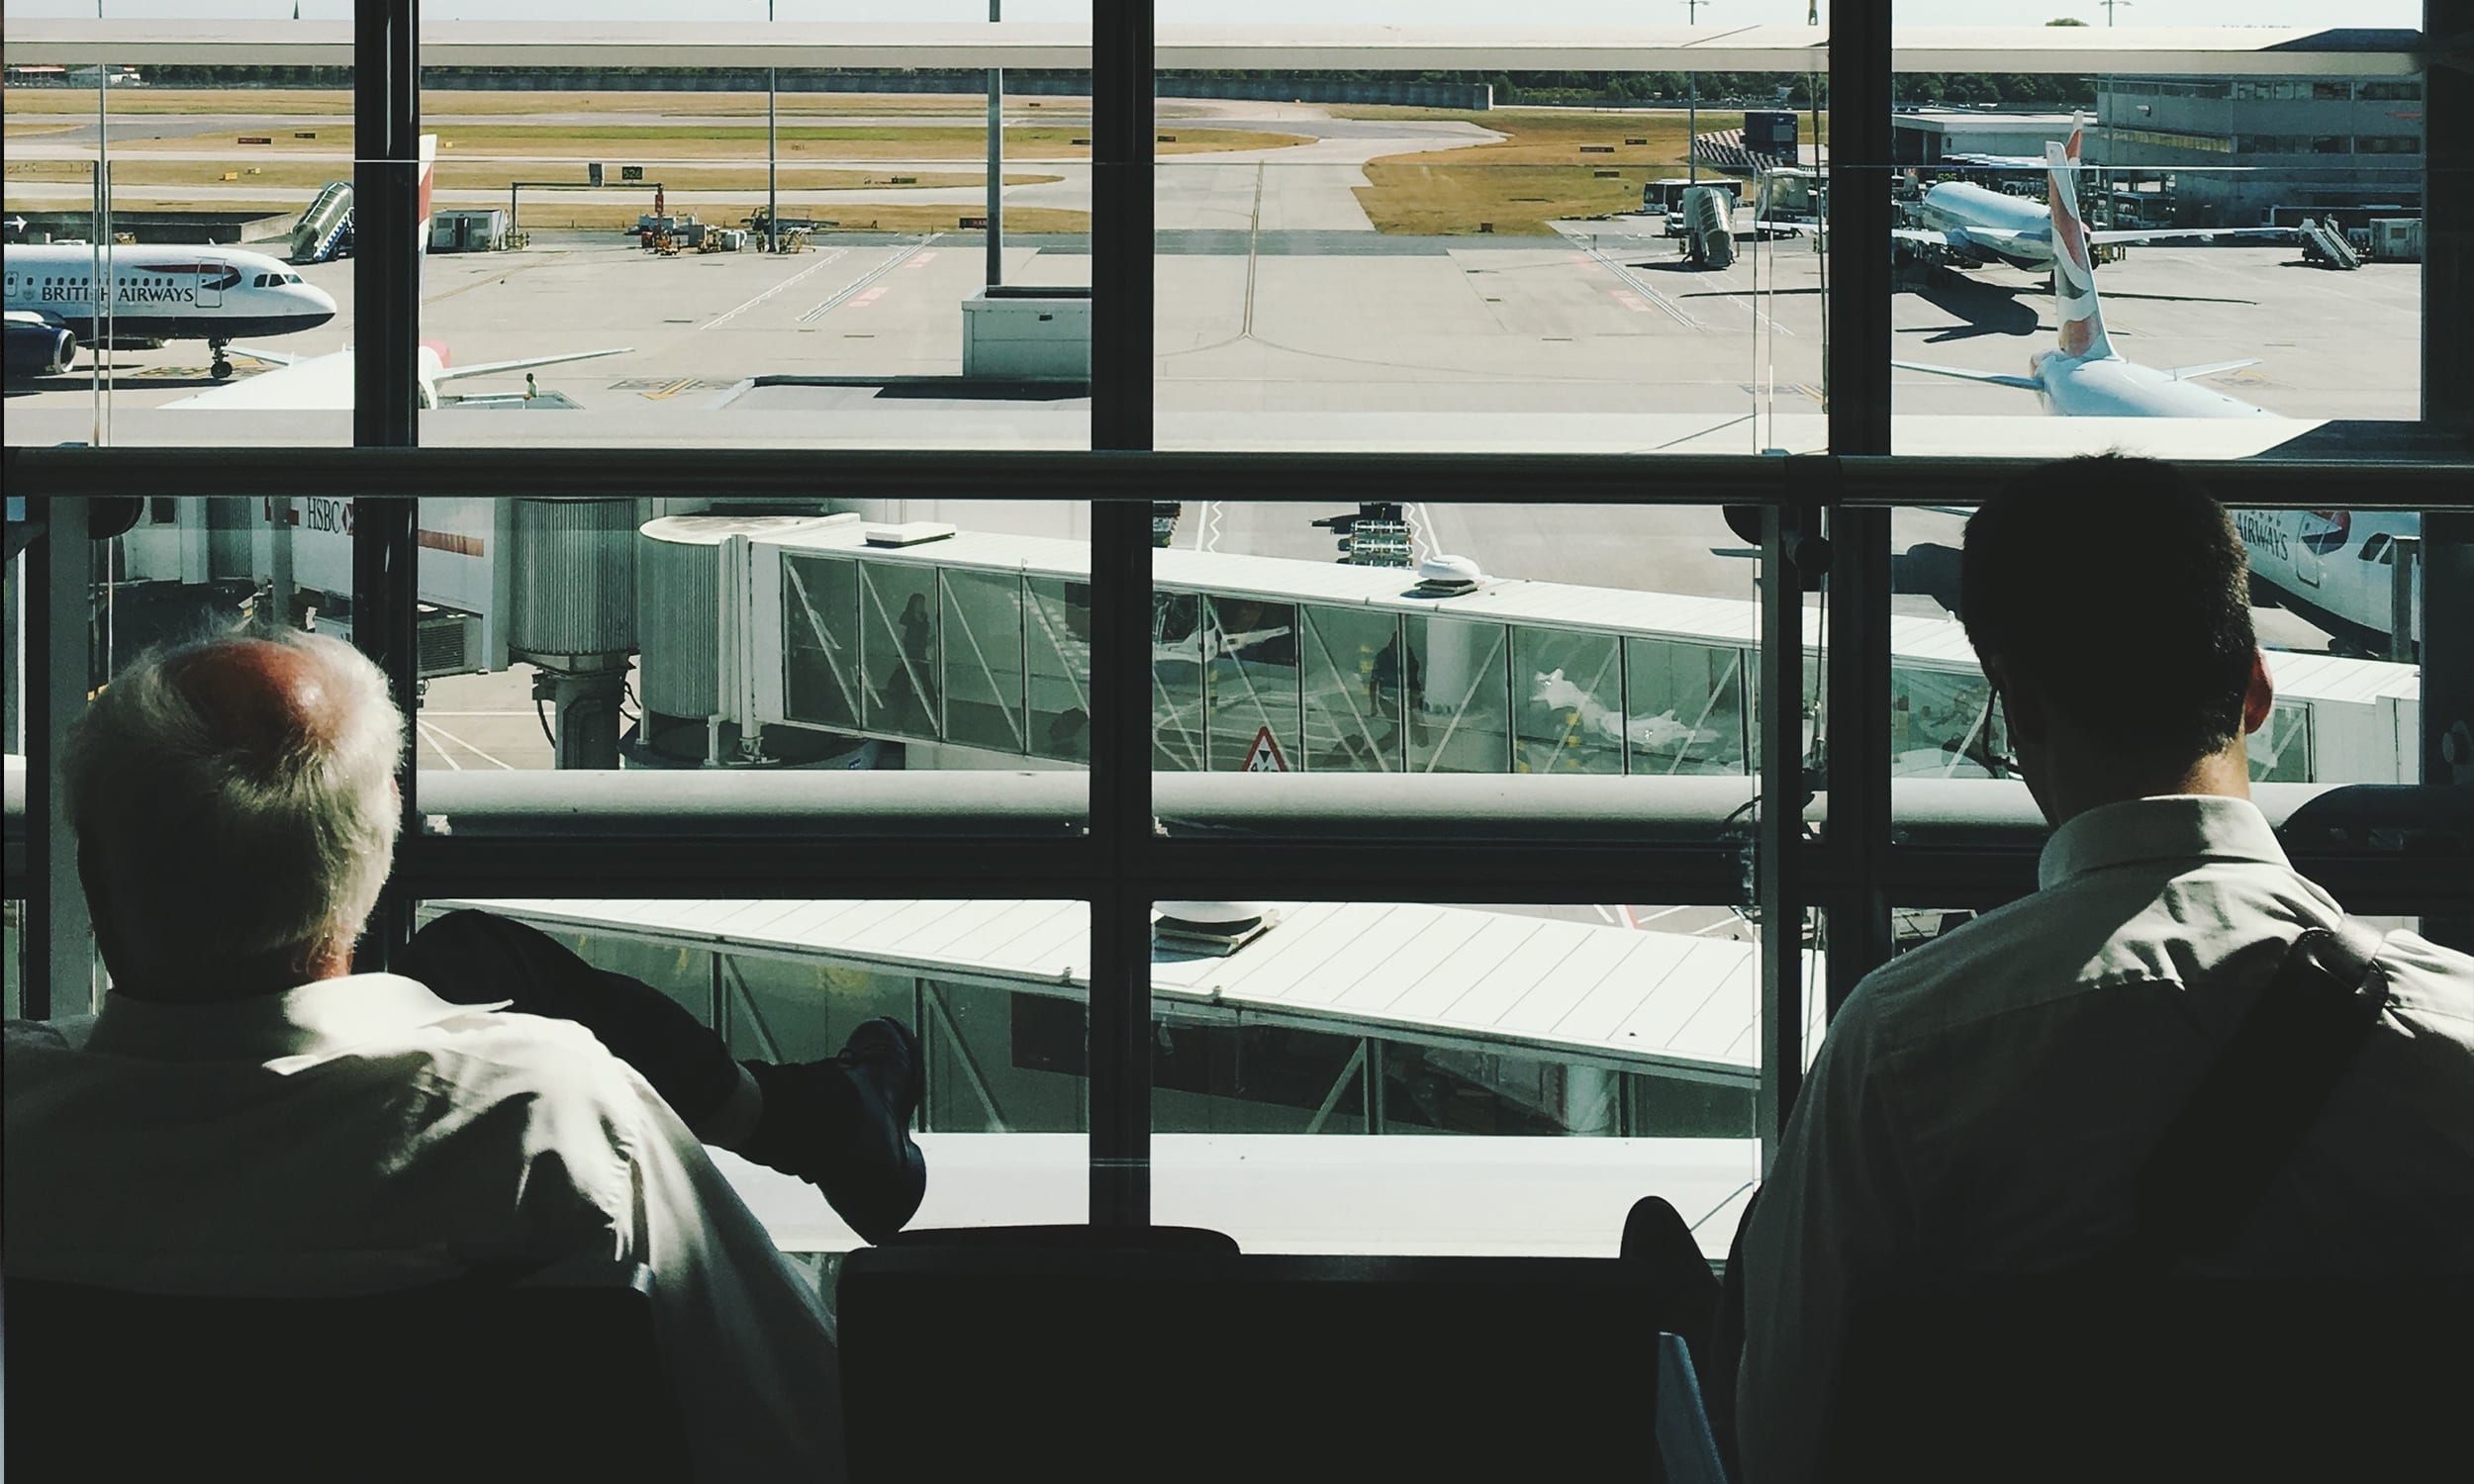 Men looking at airplanes from the airport lounge